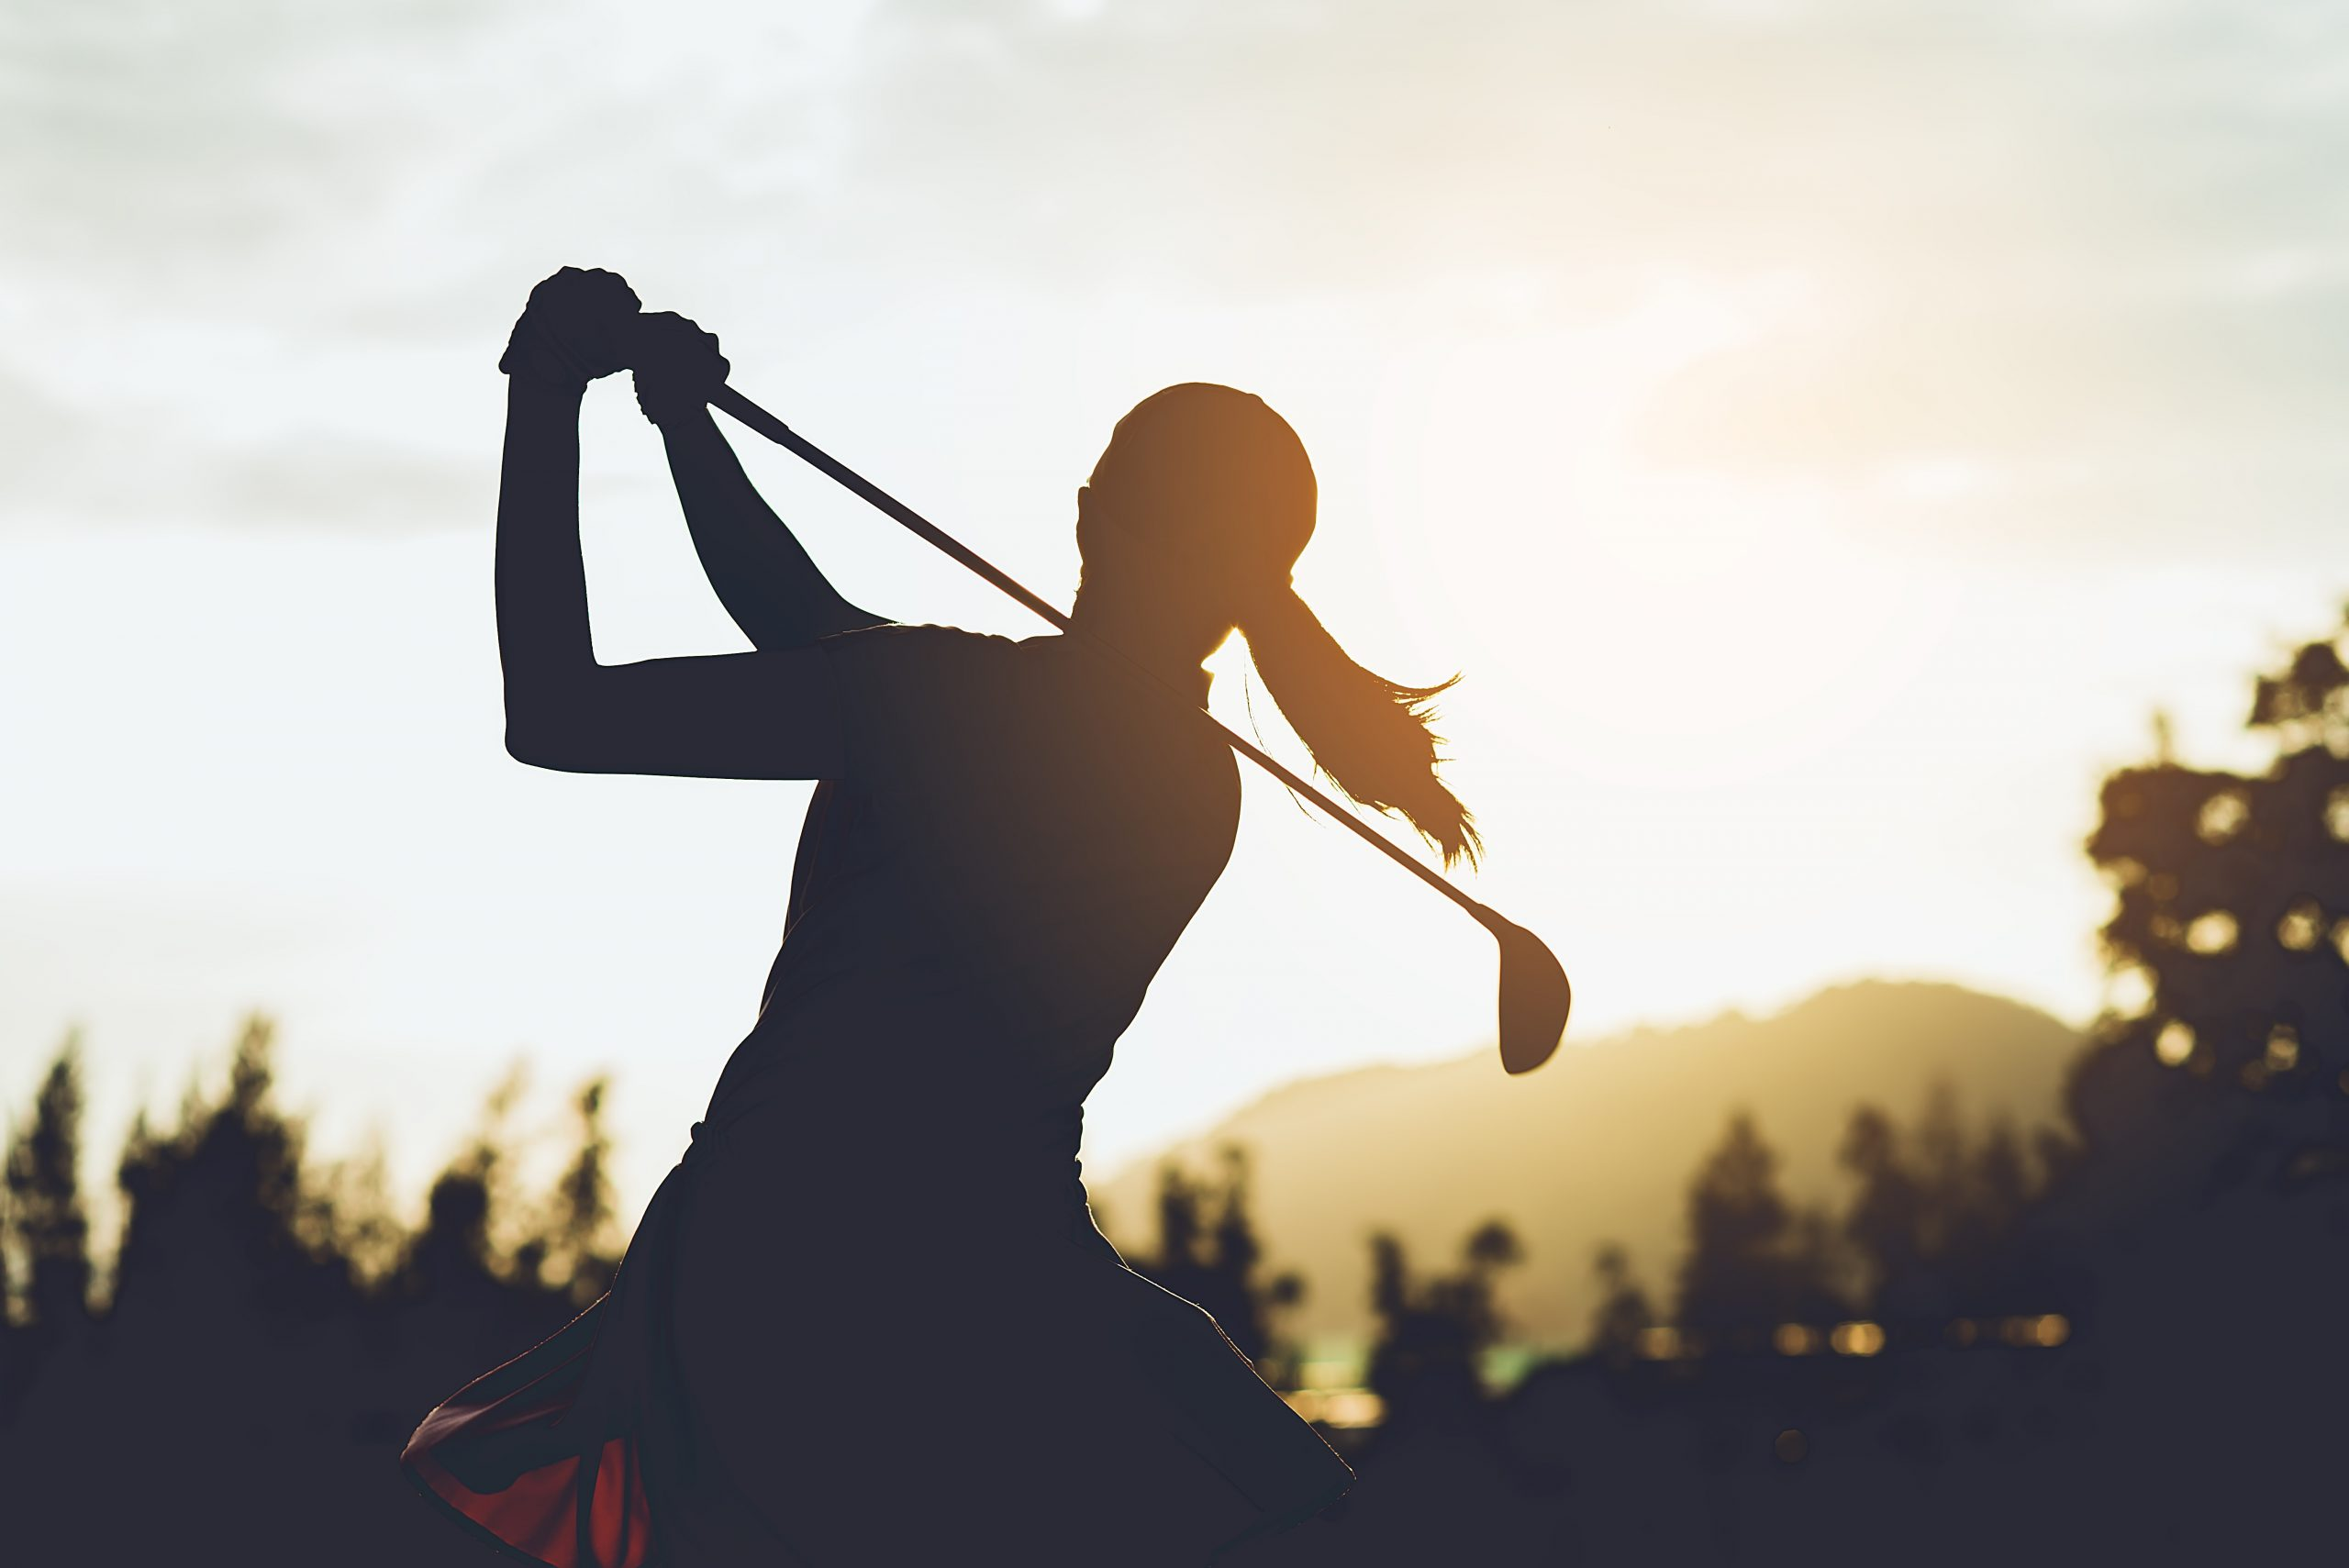 silhouette-young-female-golf-player-hit-sweeping-keep-golf-course-doing-golf-swing-she-does-exercise-relax-time-vintage-tone-scaled